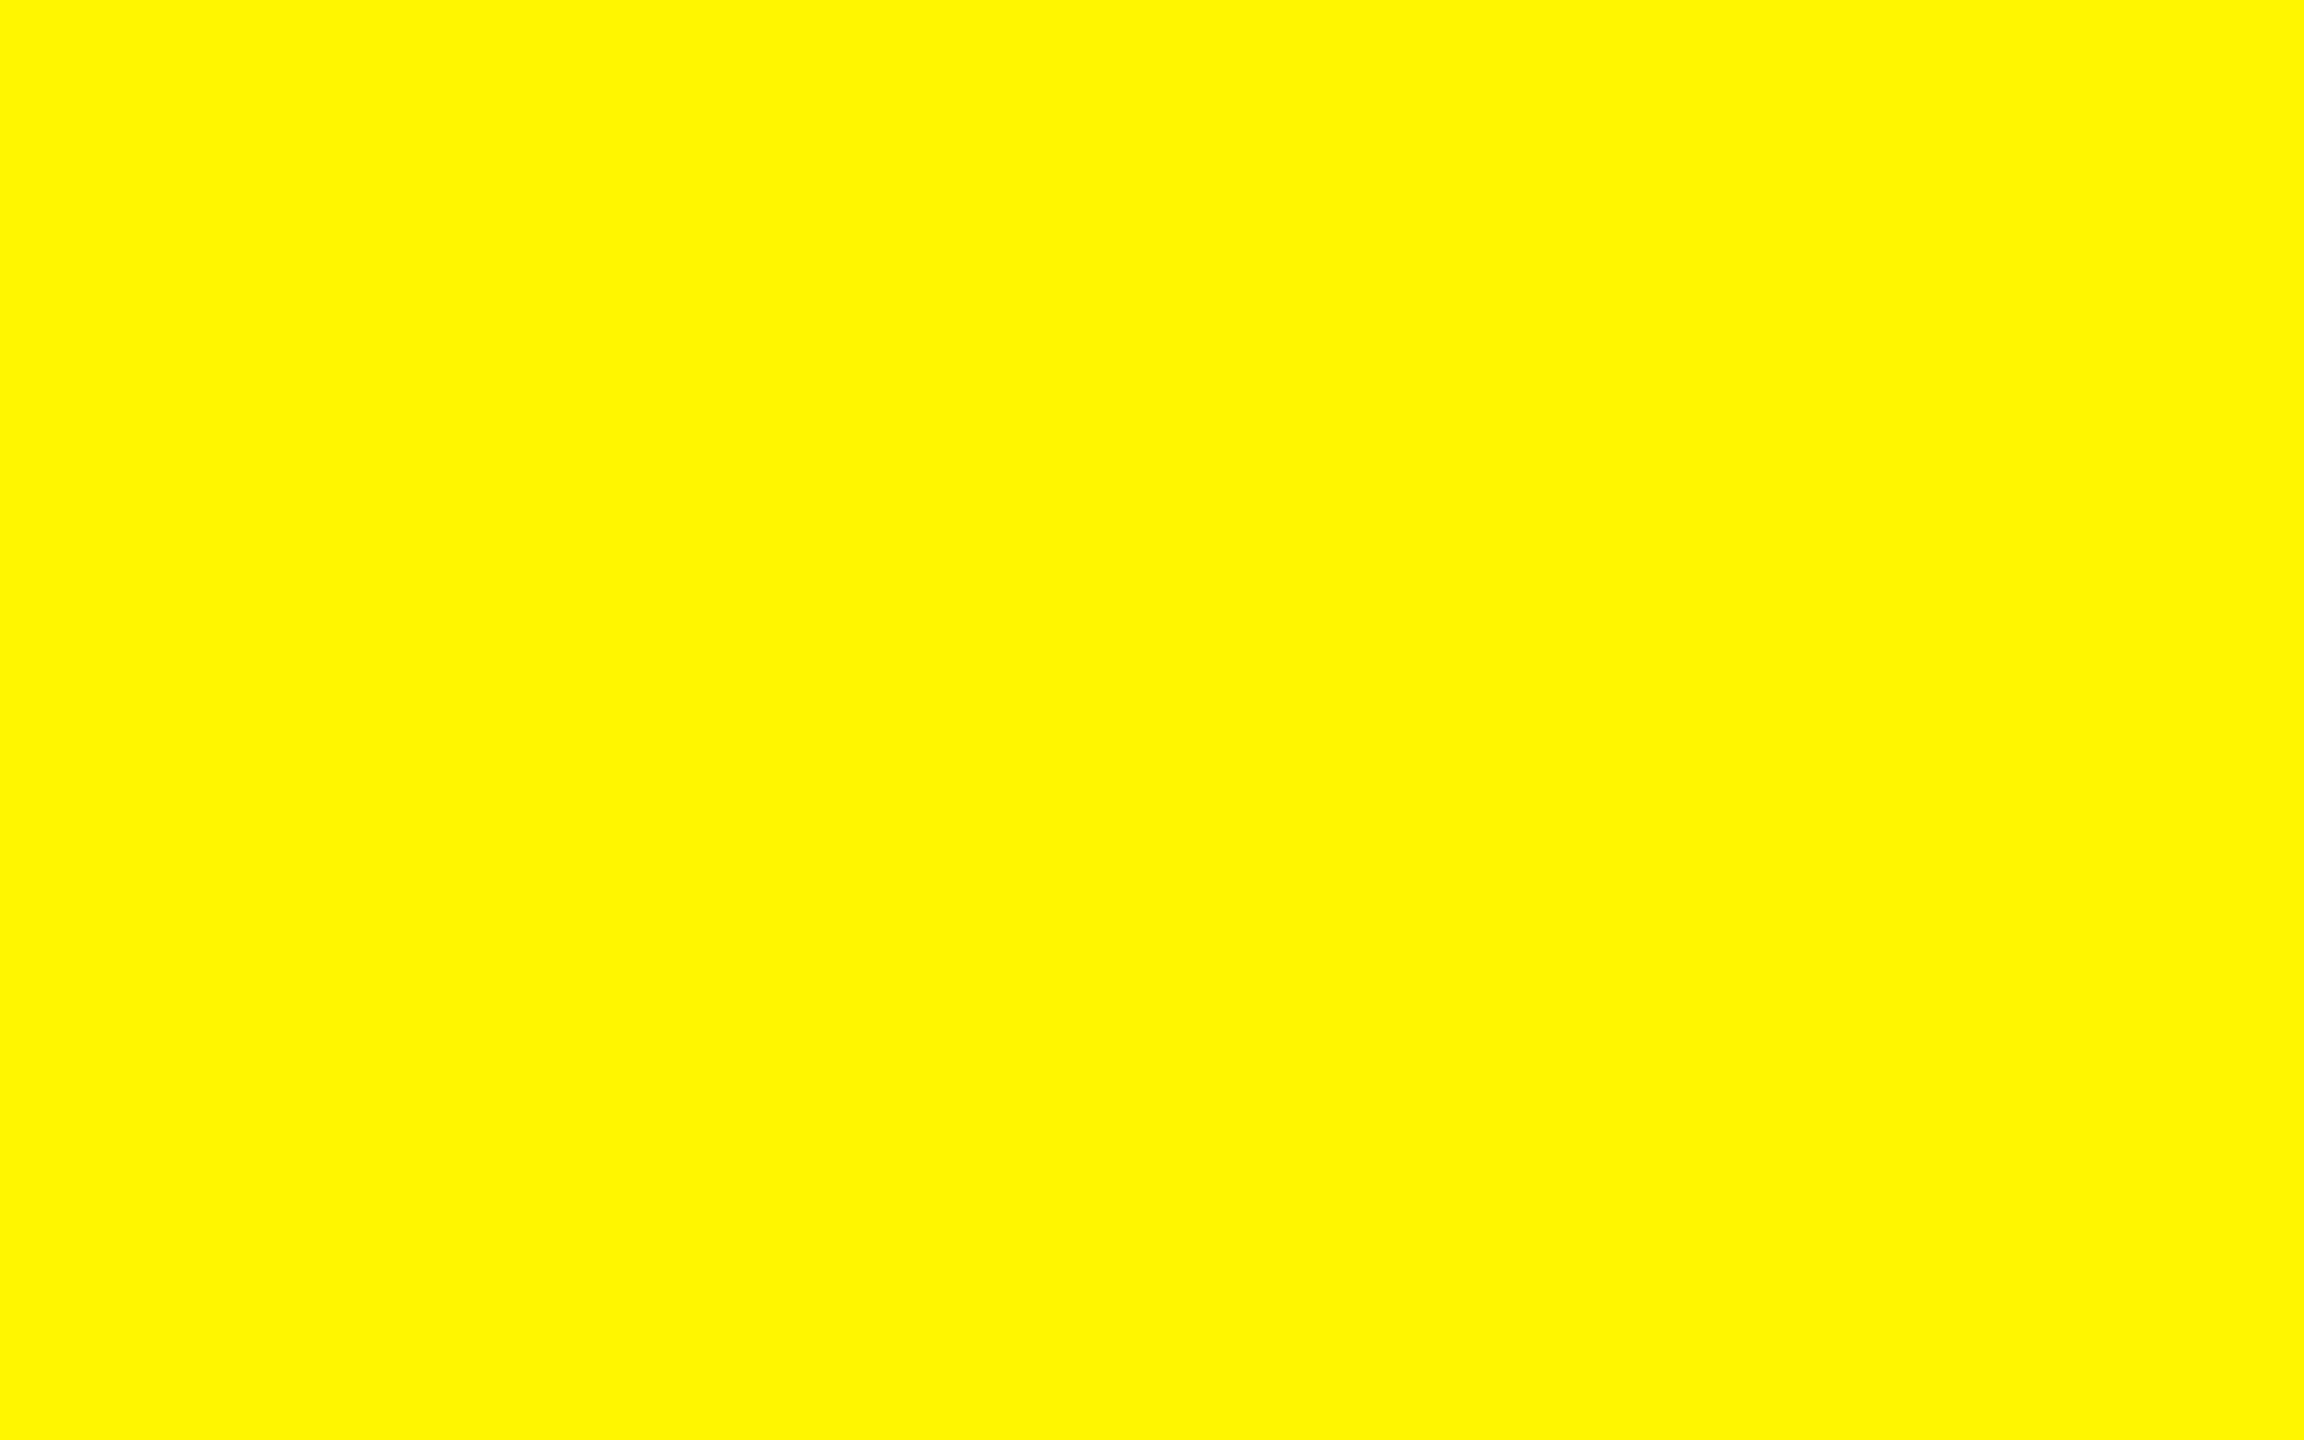 2304x1440 Cadmium Yellow Solid Color Background